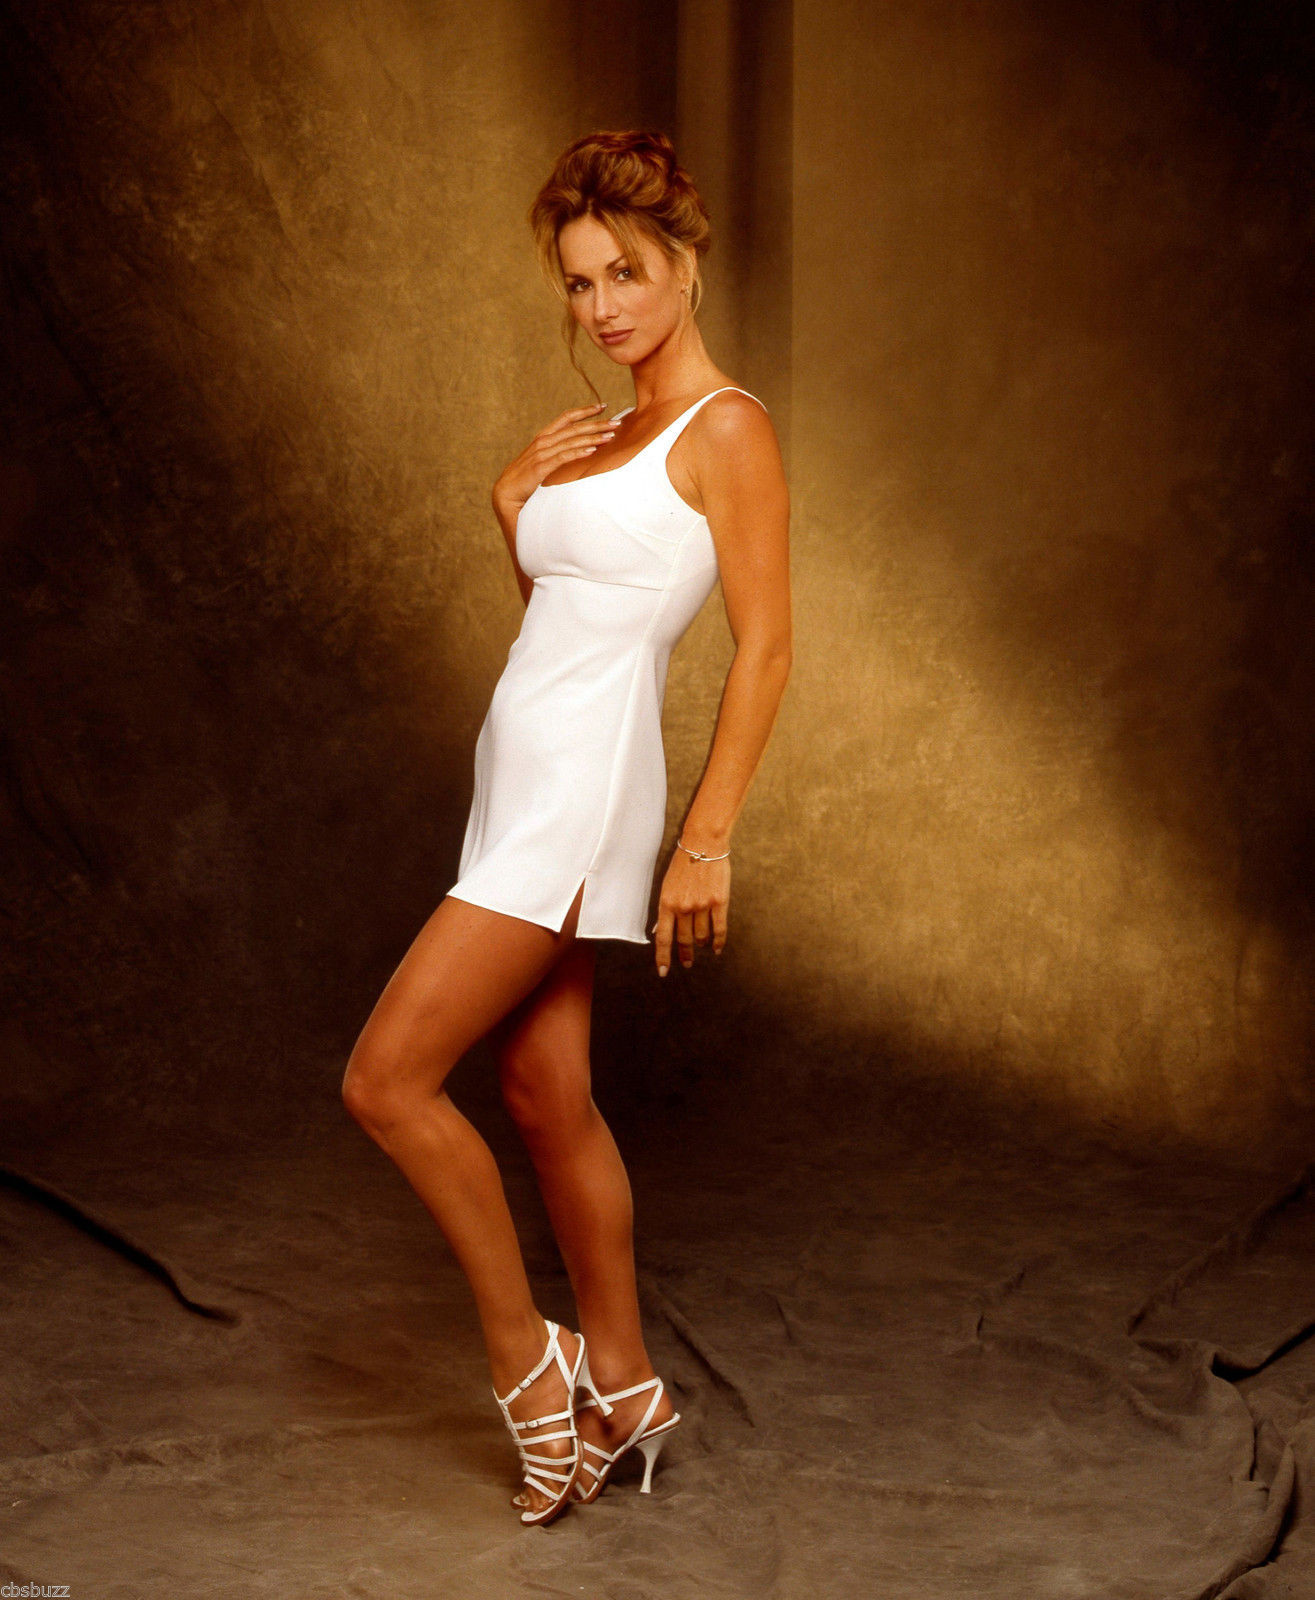 nude pics of debbe dunning  108459